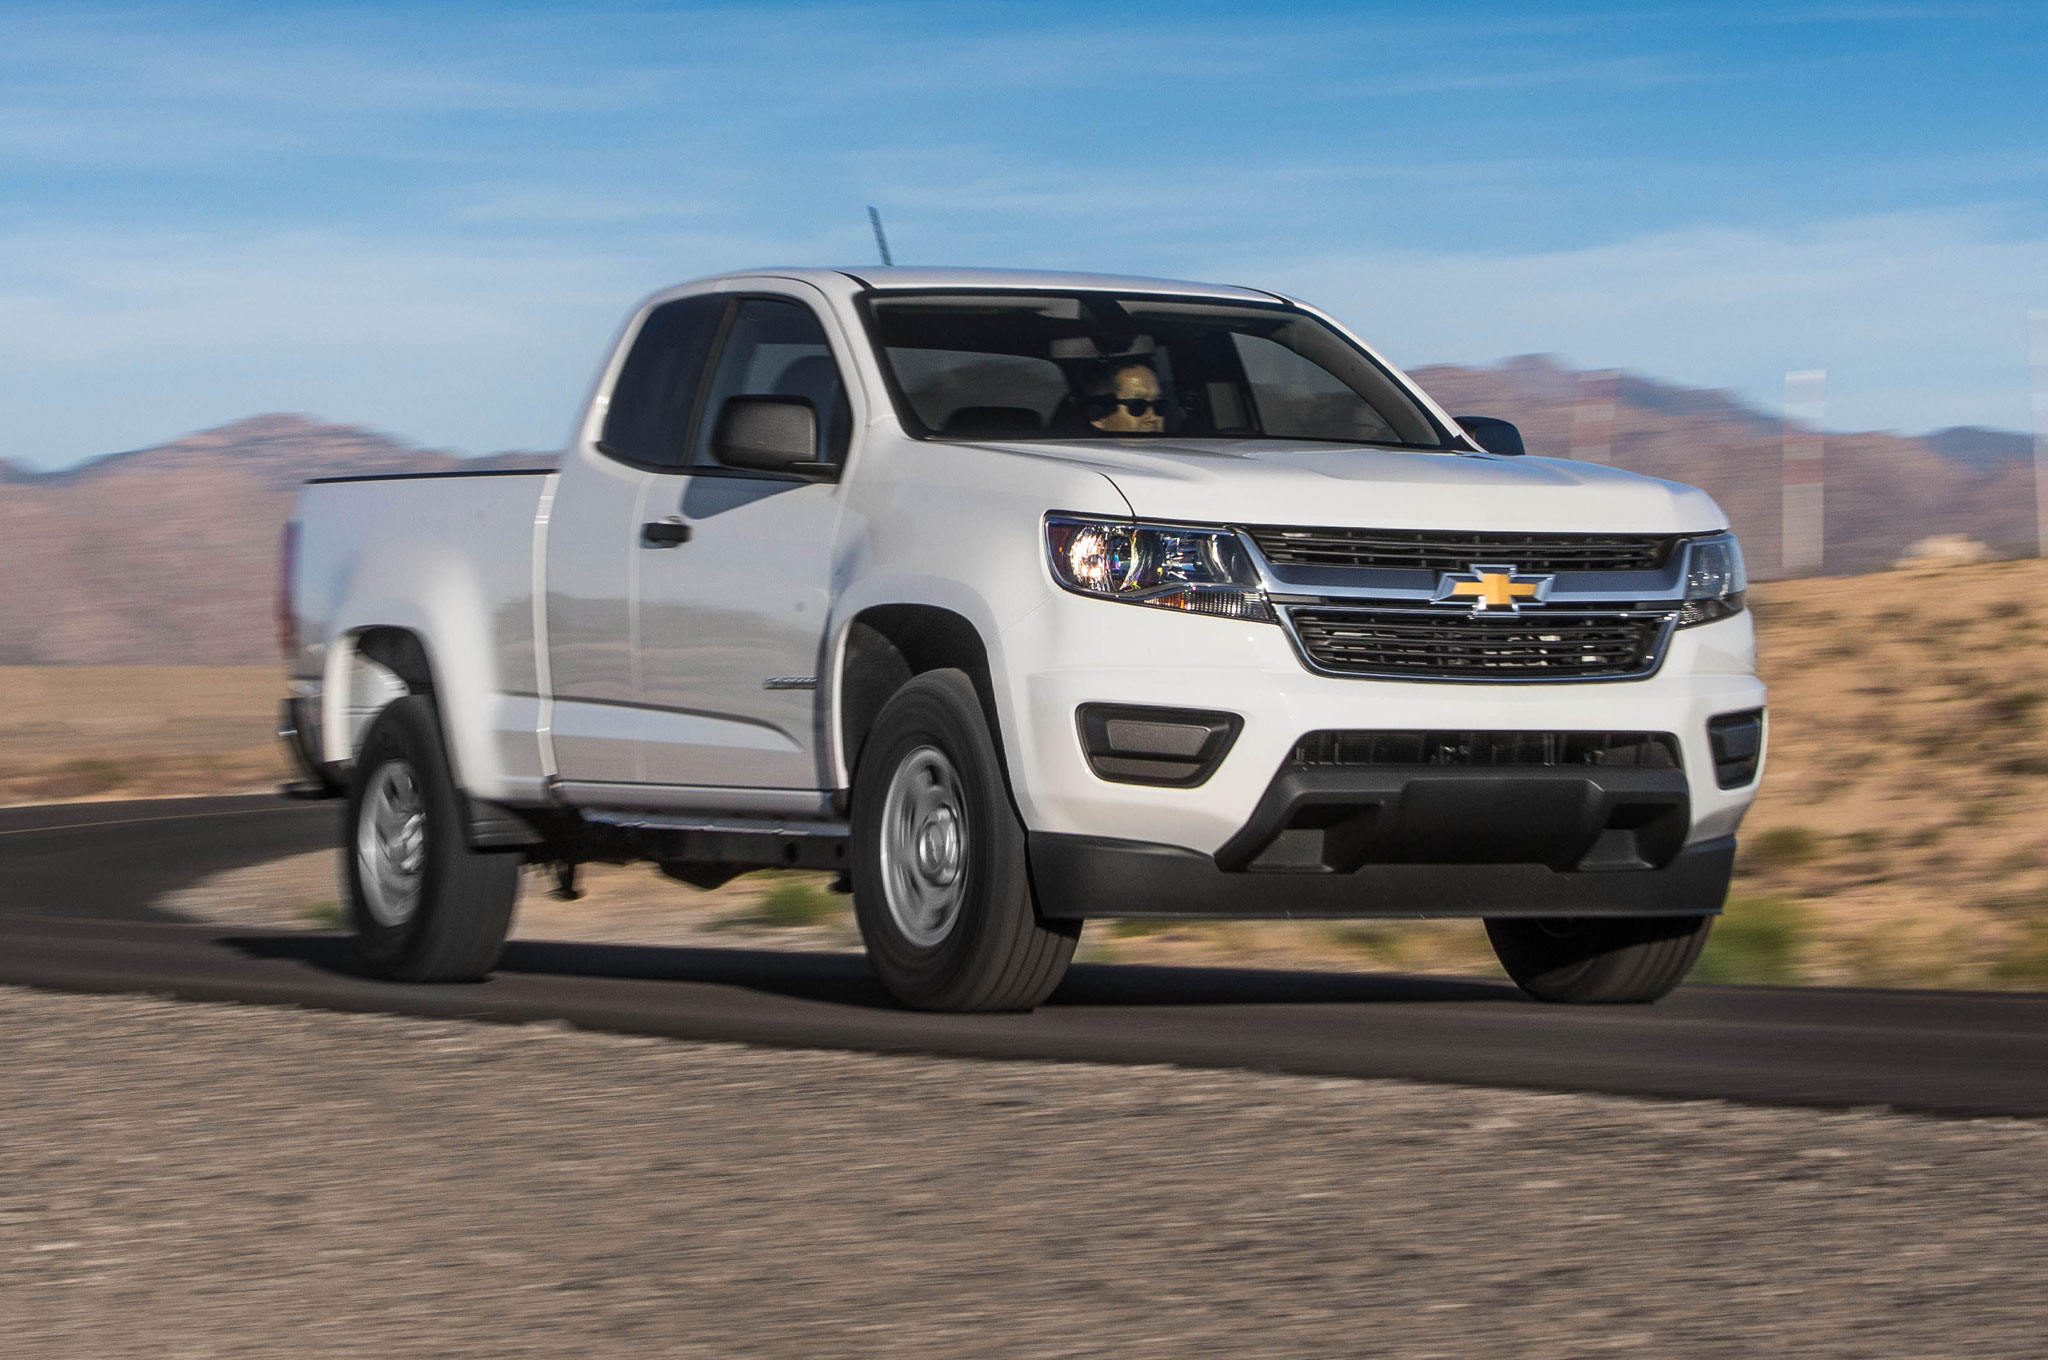 2015 Chevrolet Colorado WT 25 Front Side View On Road